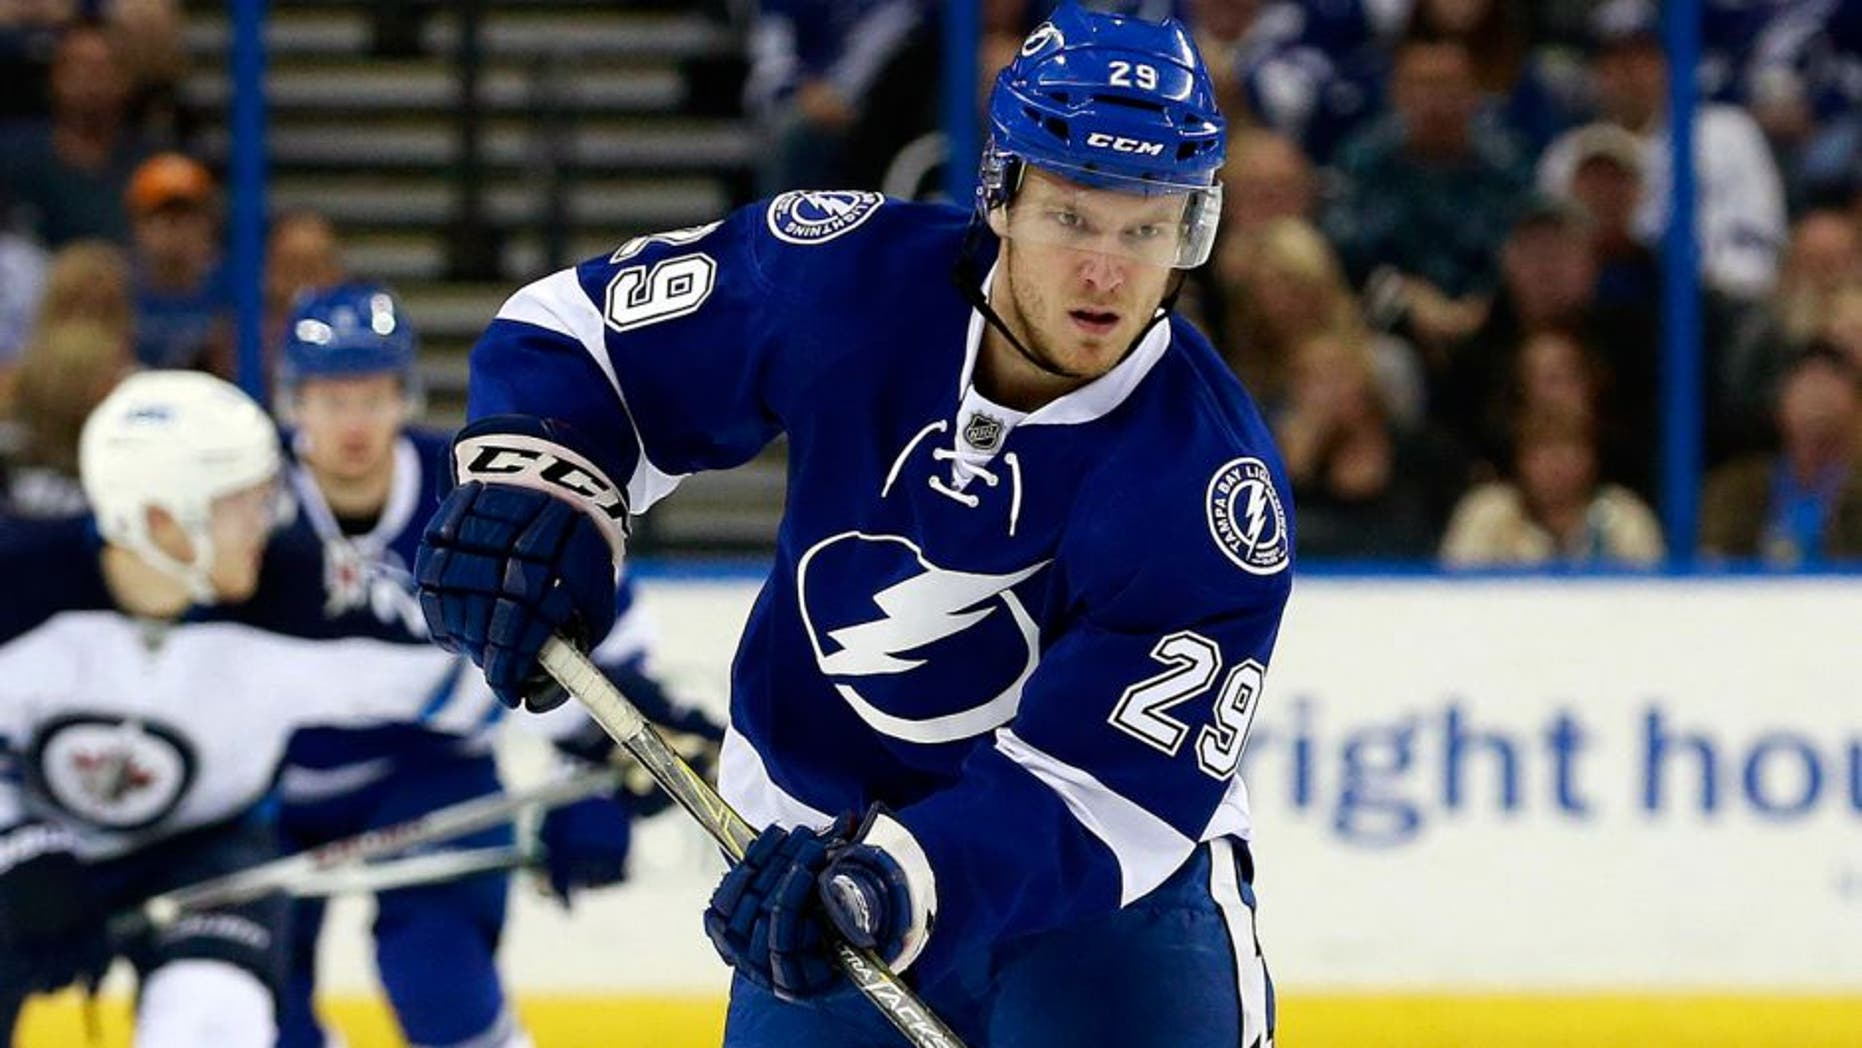 Feb 18, 2016; Tampa, FL, USA; Tampa Bay Lightning defenseman Slater Koekkoek (29) passes the puck against the Winnipeg Jets during the second period at Amalie Arena. Mandatory Credit: Kim Klement-USA TODAY Sports